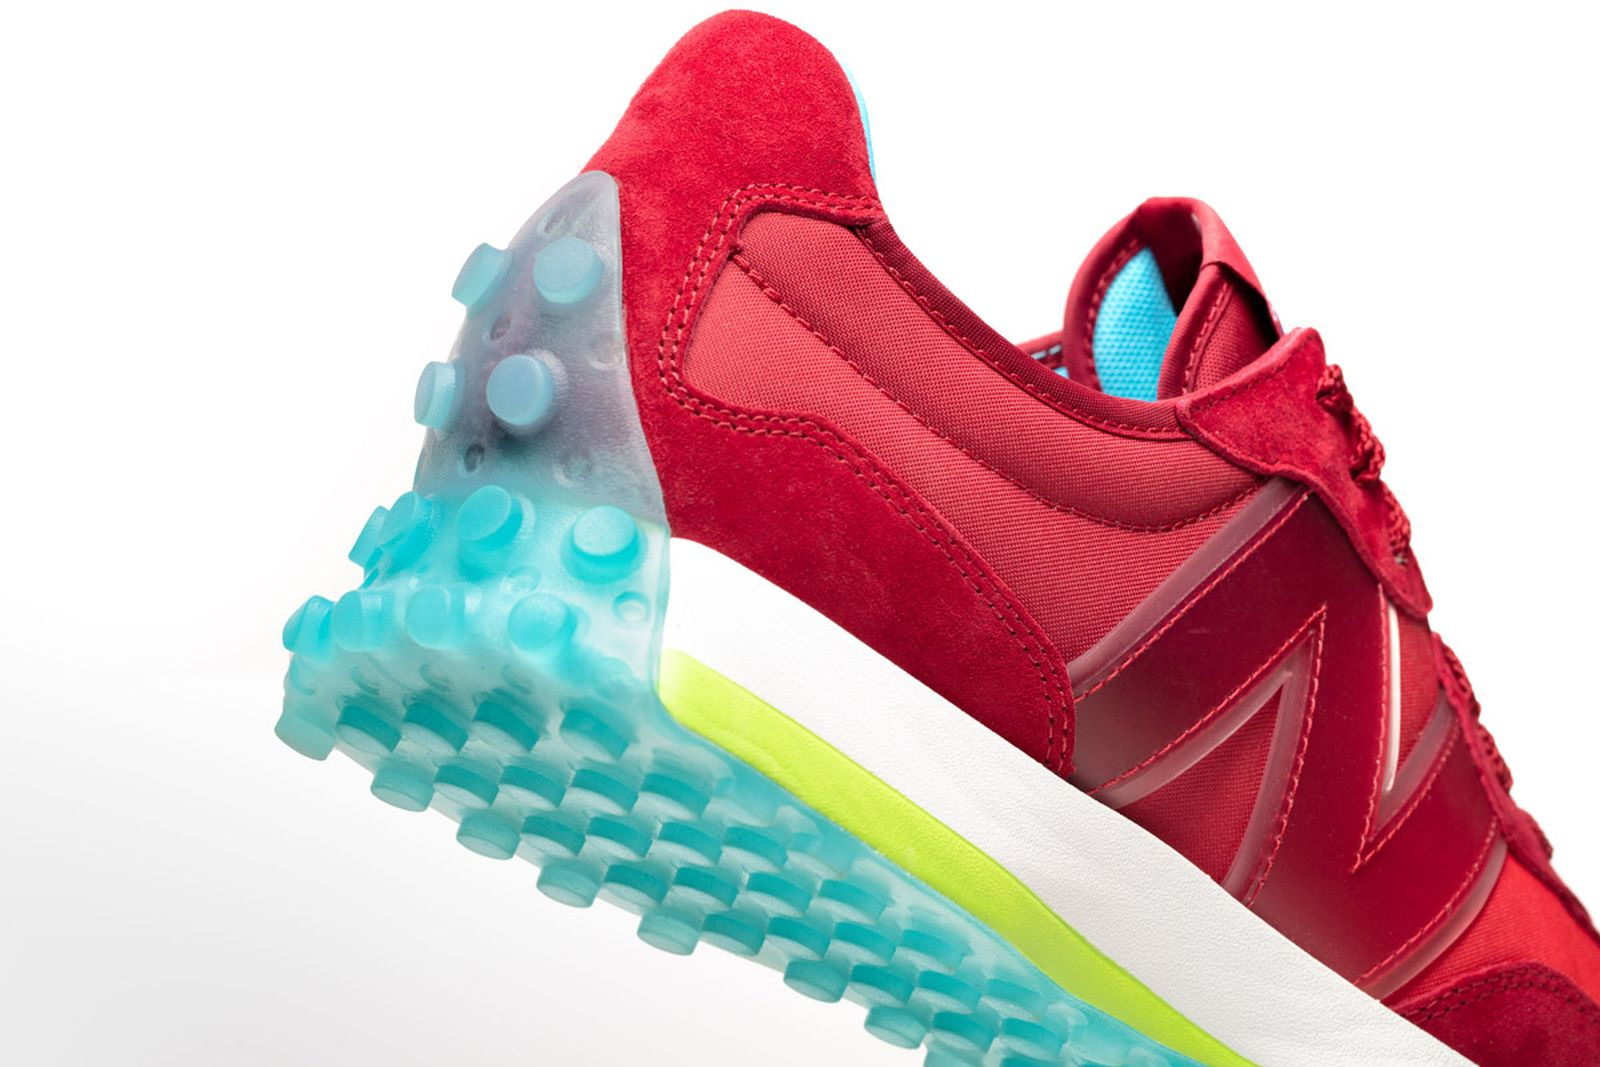 12new-balance-concepts-cranberry-product-shots